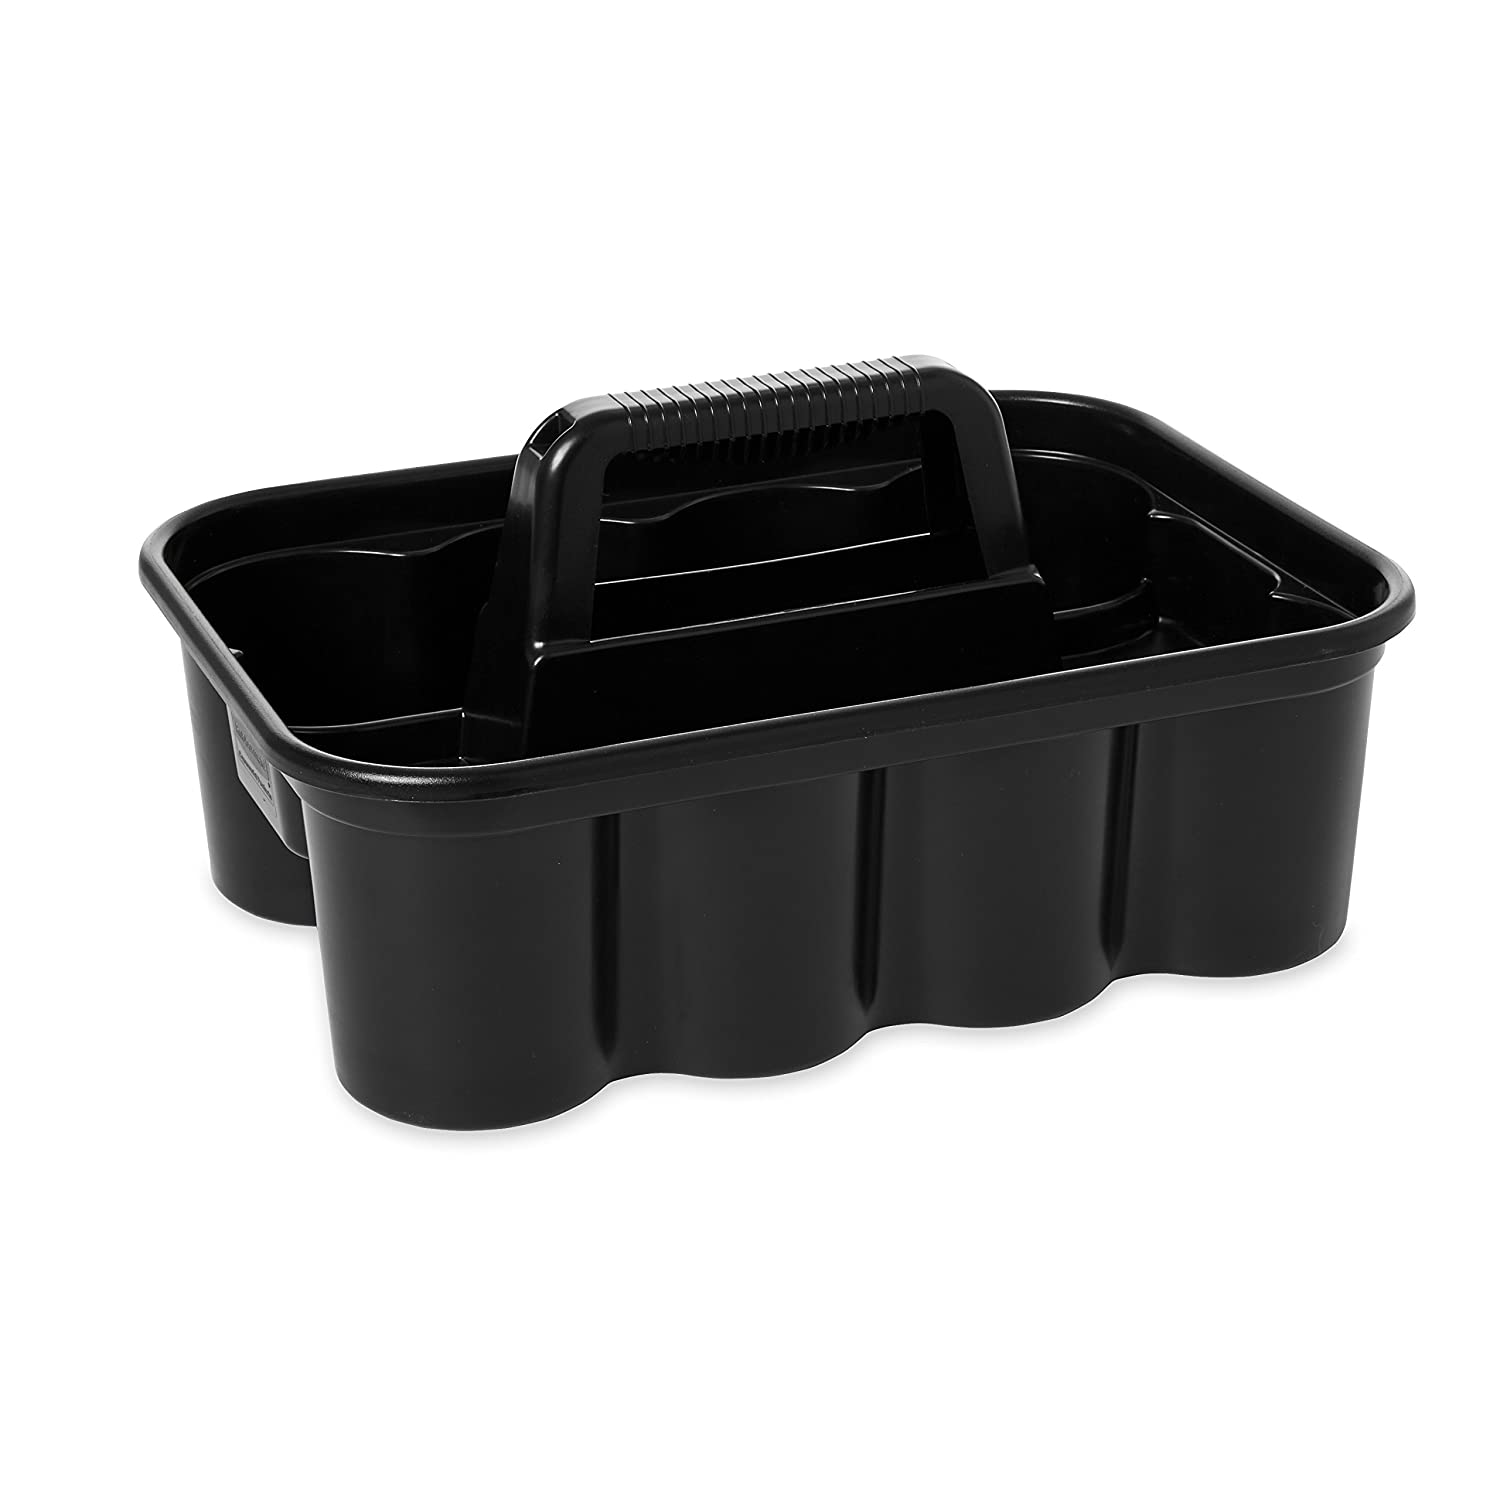 Rubbermaid Commercial Deluxe Carry Cleaning Caddy, Black (FG315488BLA) Rubbermaid Commercial Products